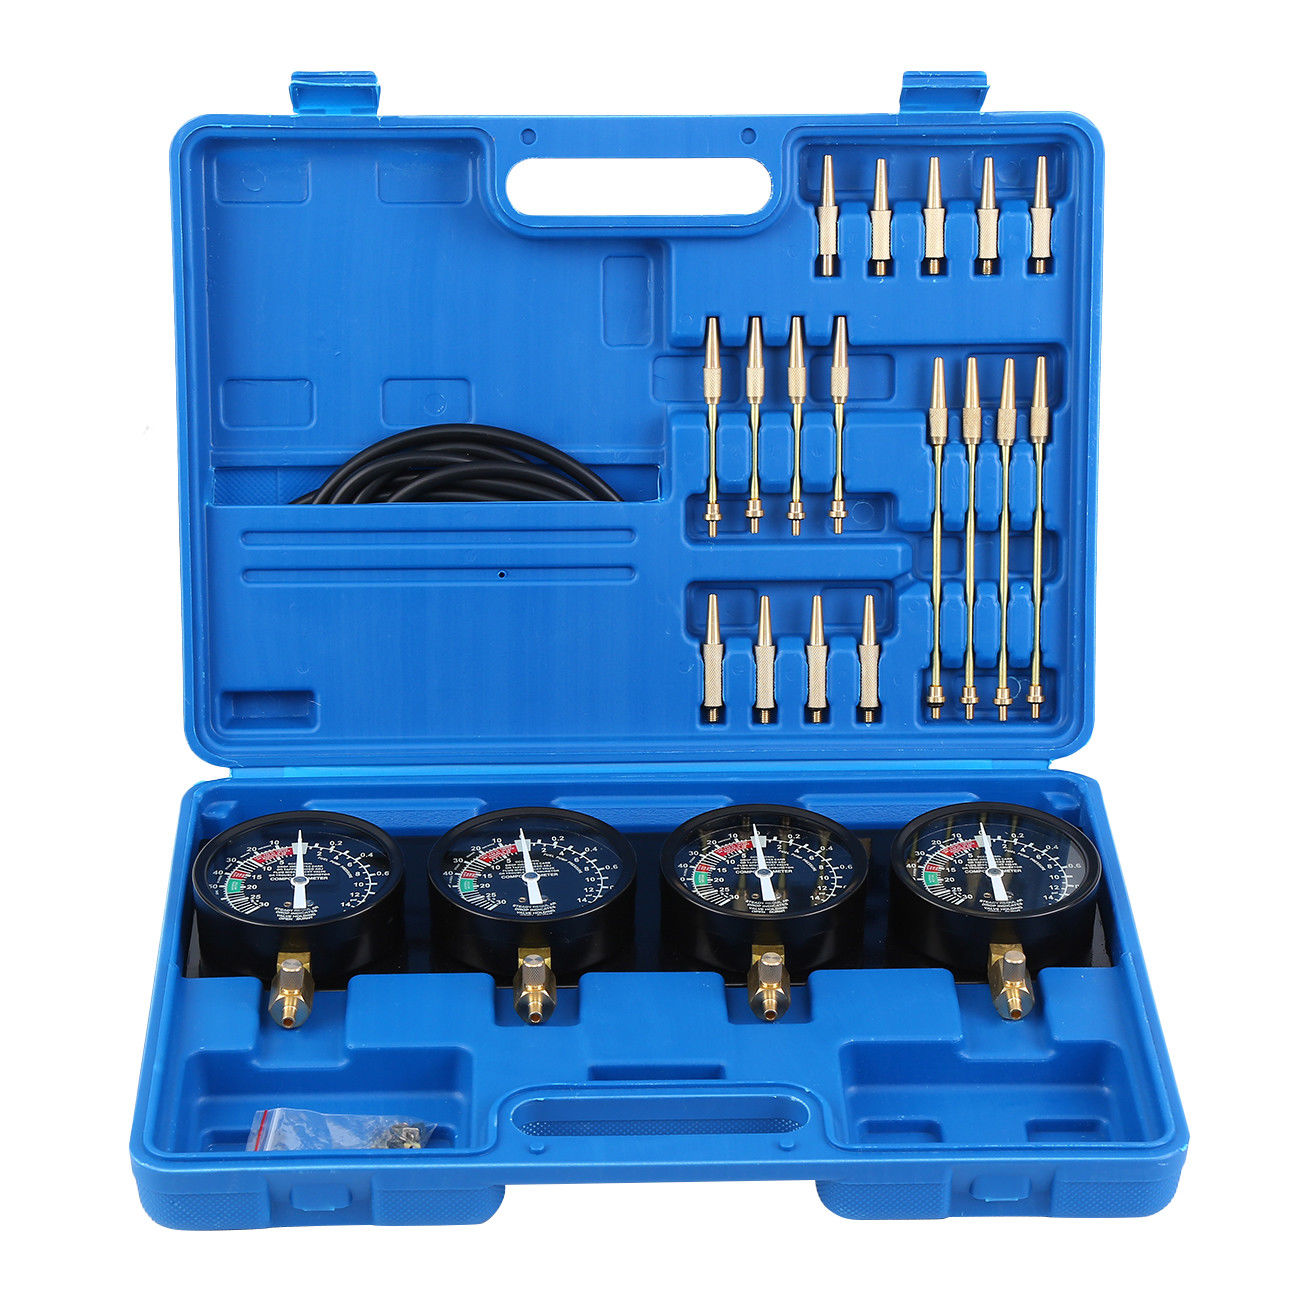 Fuel Vacuum Carburetor Synchronizer Carb Balancer Sync Gauge Set Auto Tool 4 Kit For CB GS KZ 550 650 750 850 Motorcycle